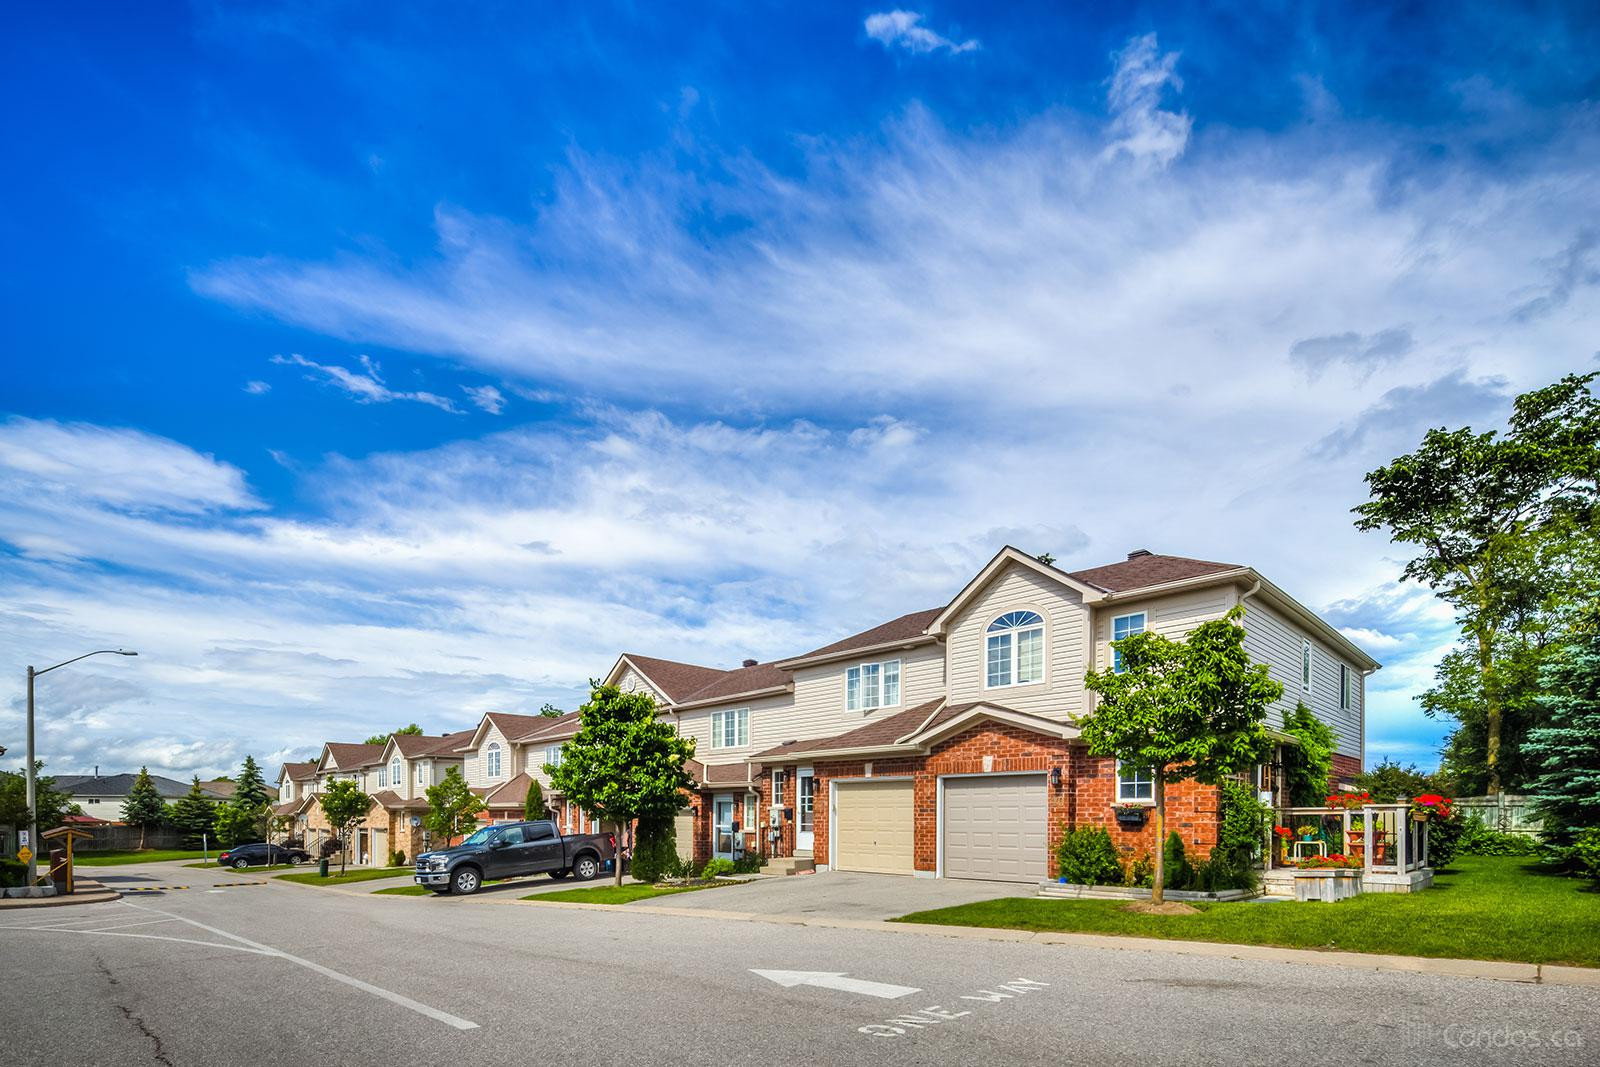 Mapleview Drive Condos at 430 Mapleview Dr E, Barrie 0